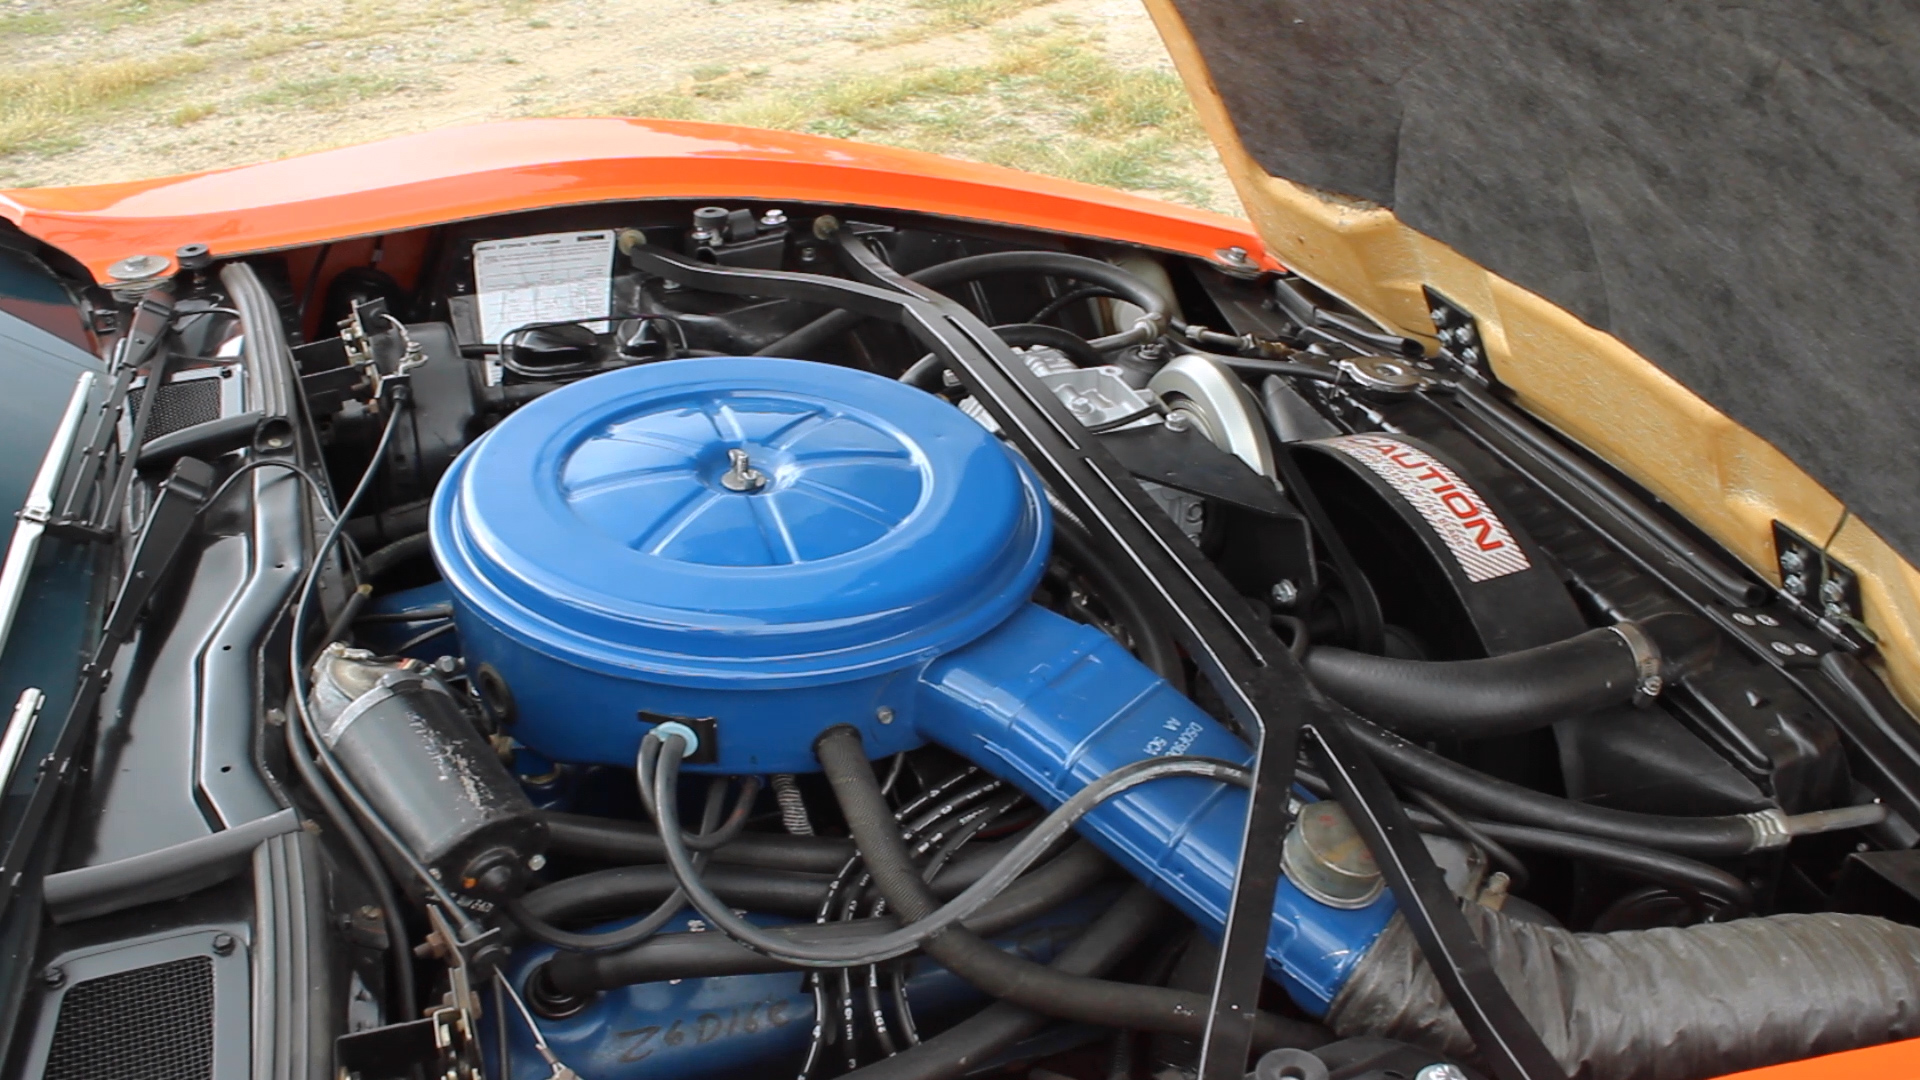 Bricklin SV-1 engine